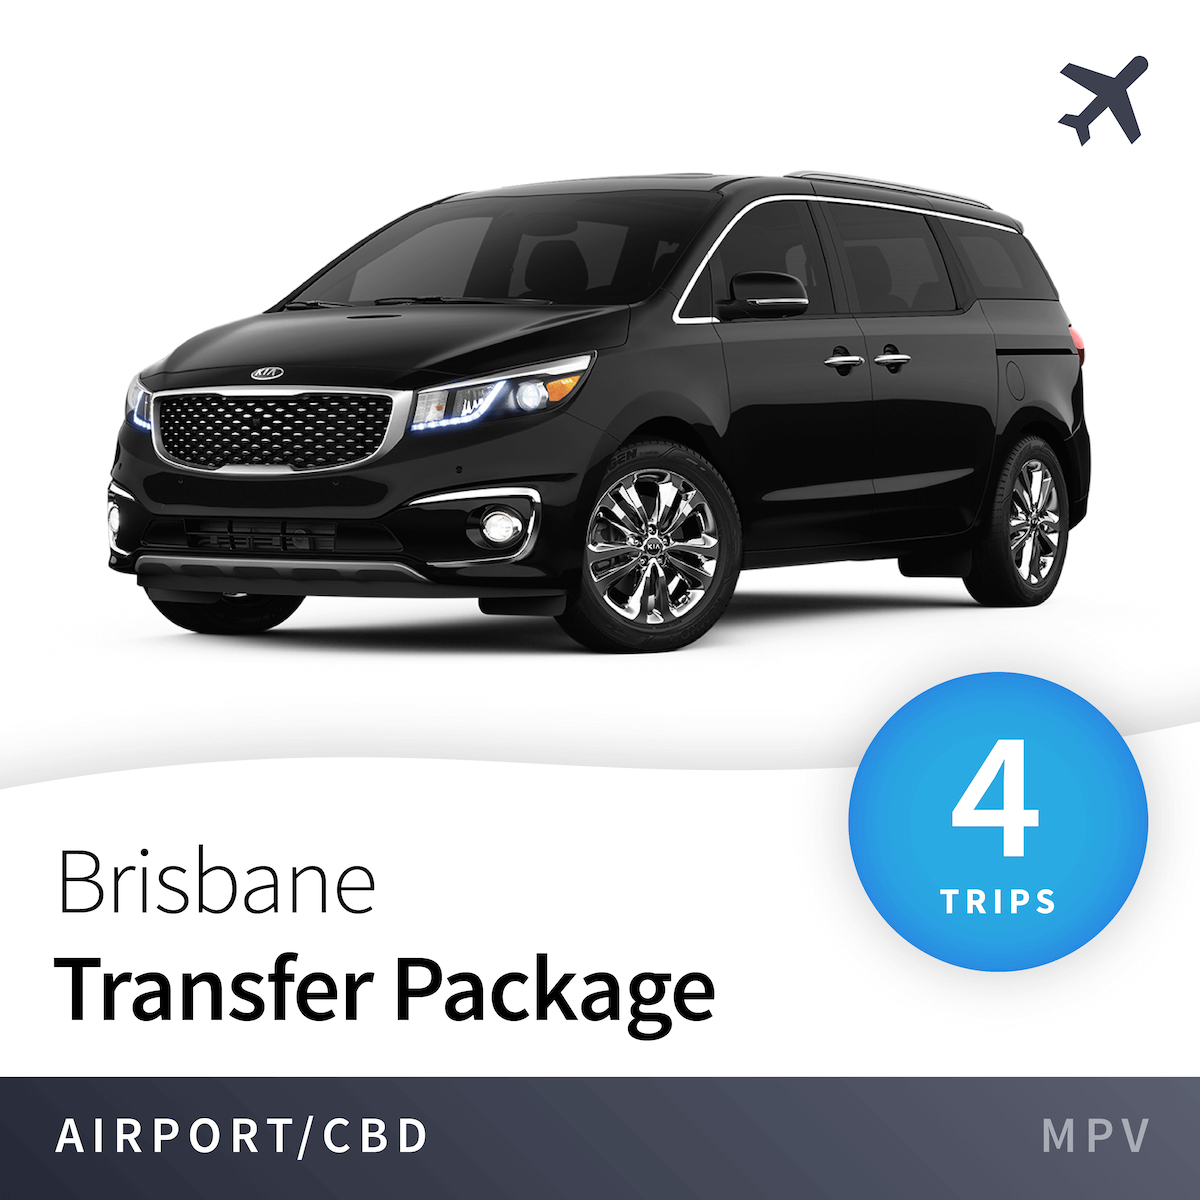 Brisbane Airport Transfer Package - MPV (4 Trips) 5